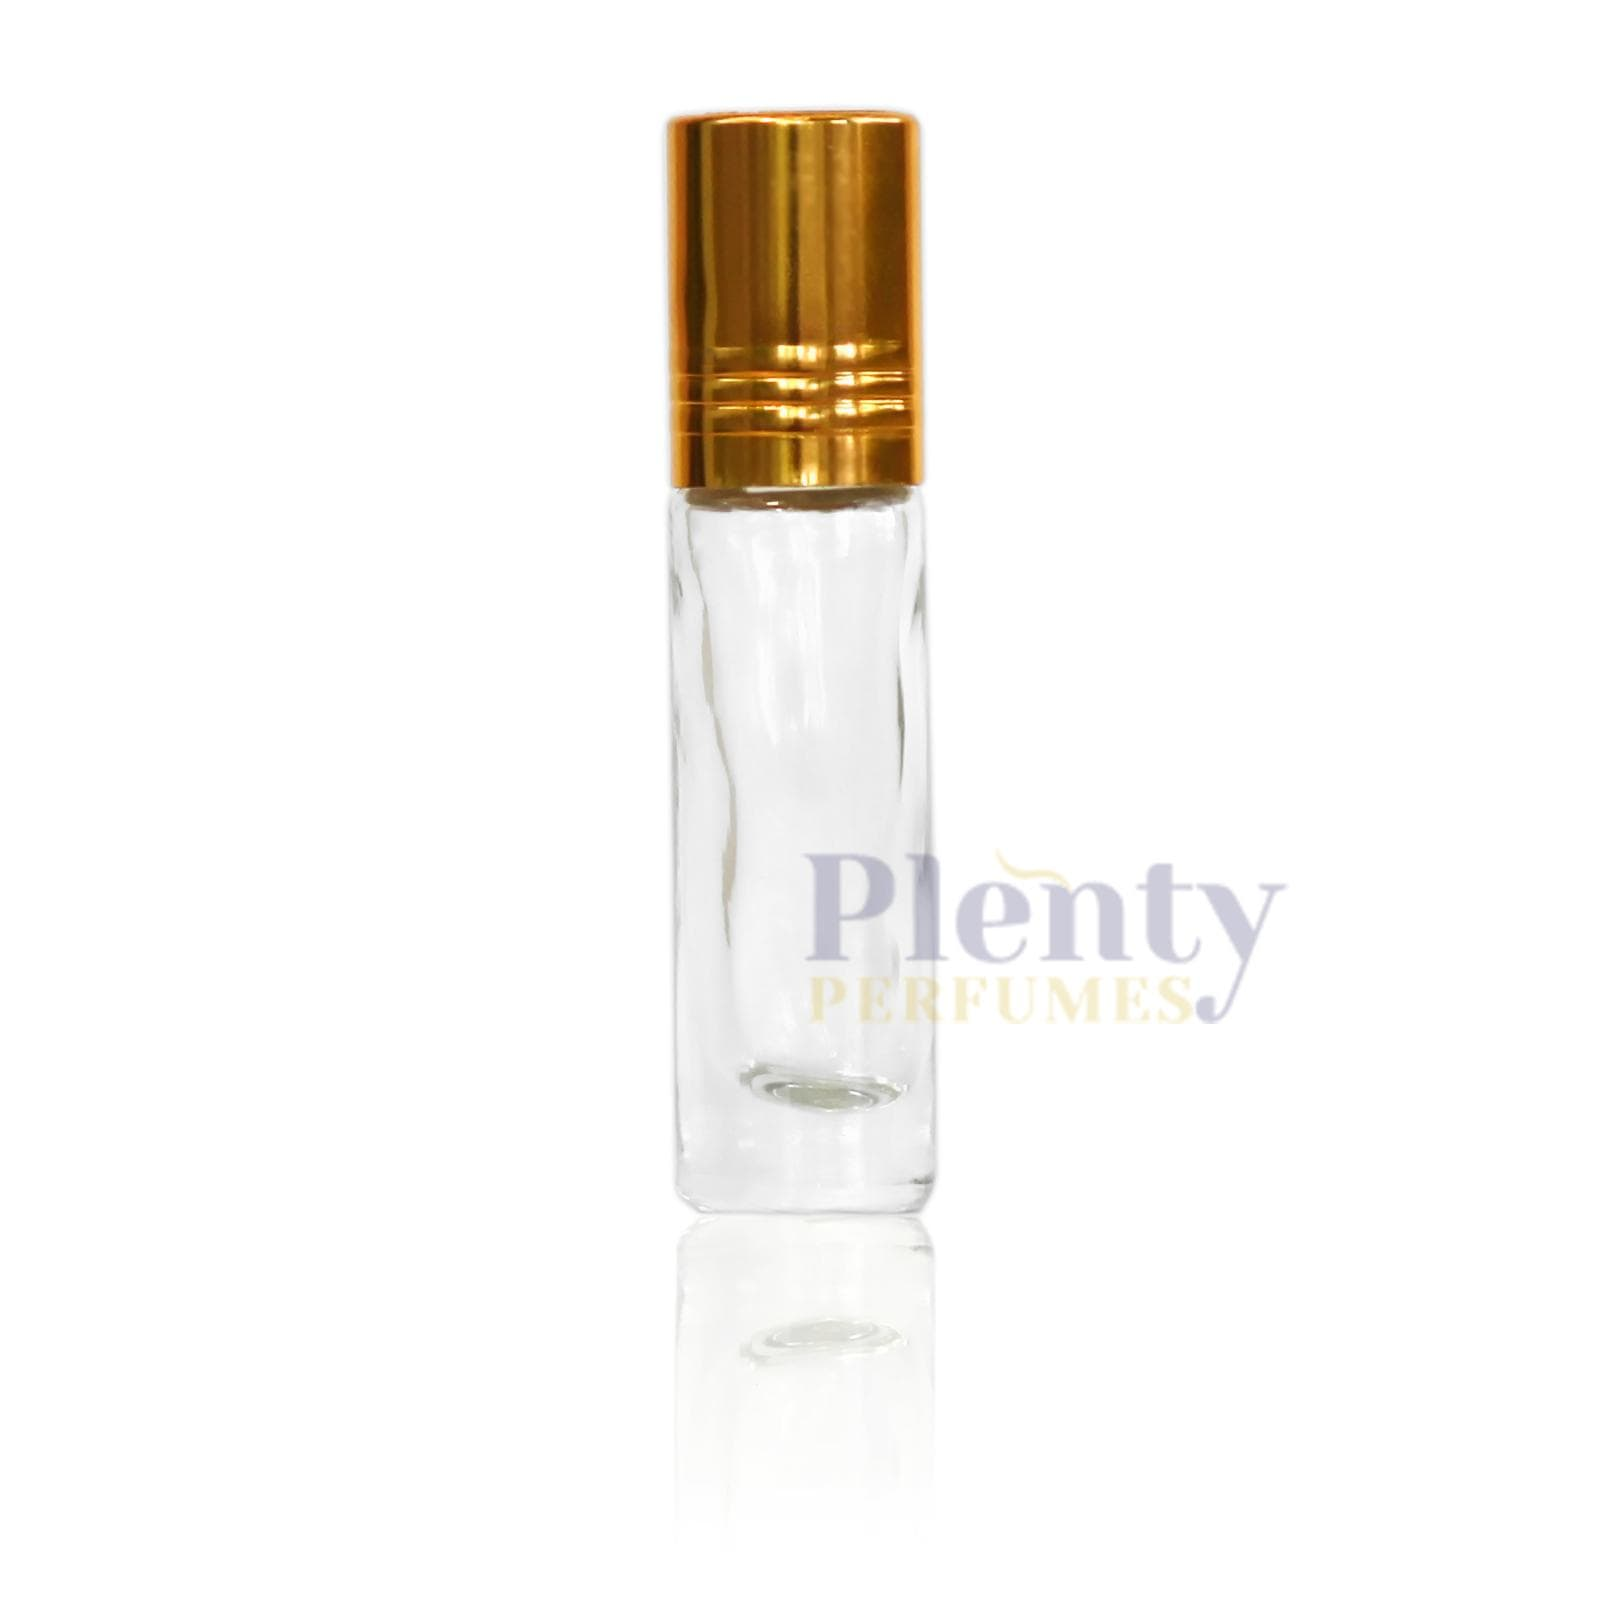 Denhil Silver Perfume Oil By Surrati - Plenty Perfumes